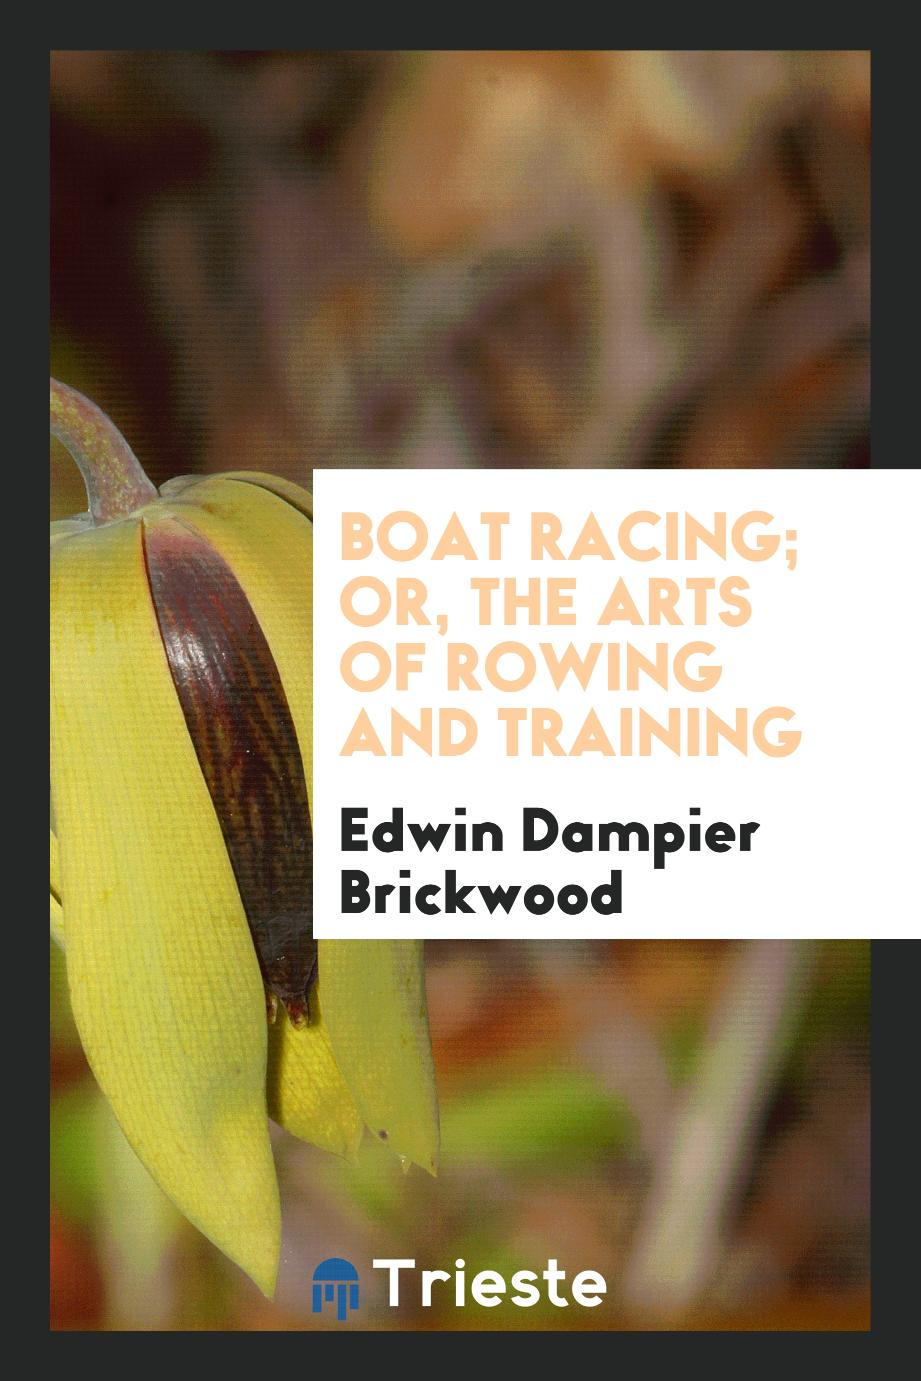 Boat racing; or, The arts of rowing and training